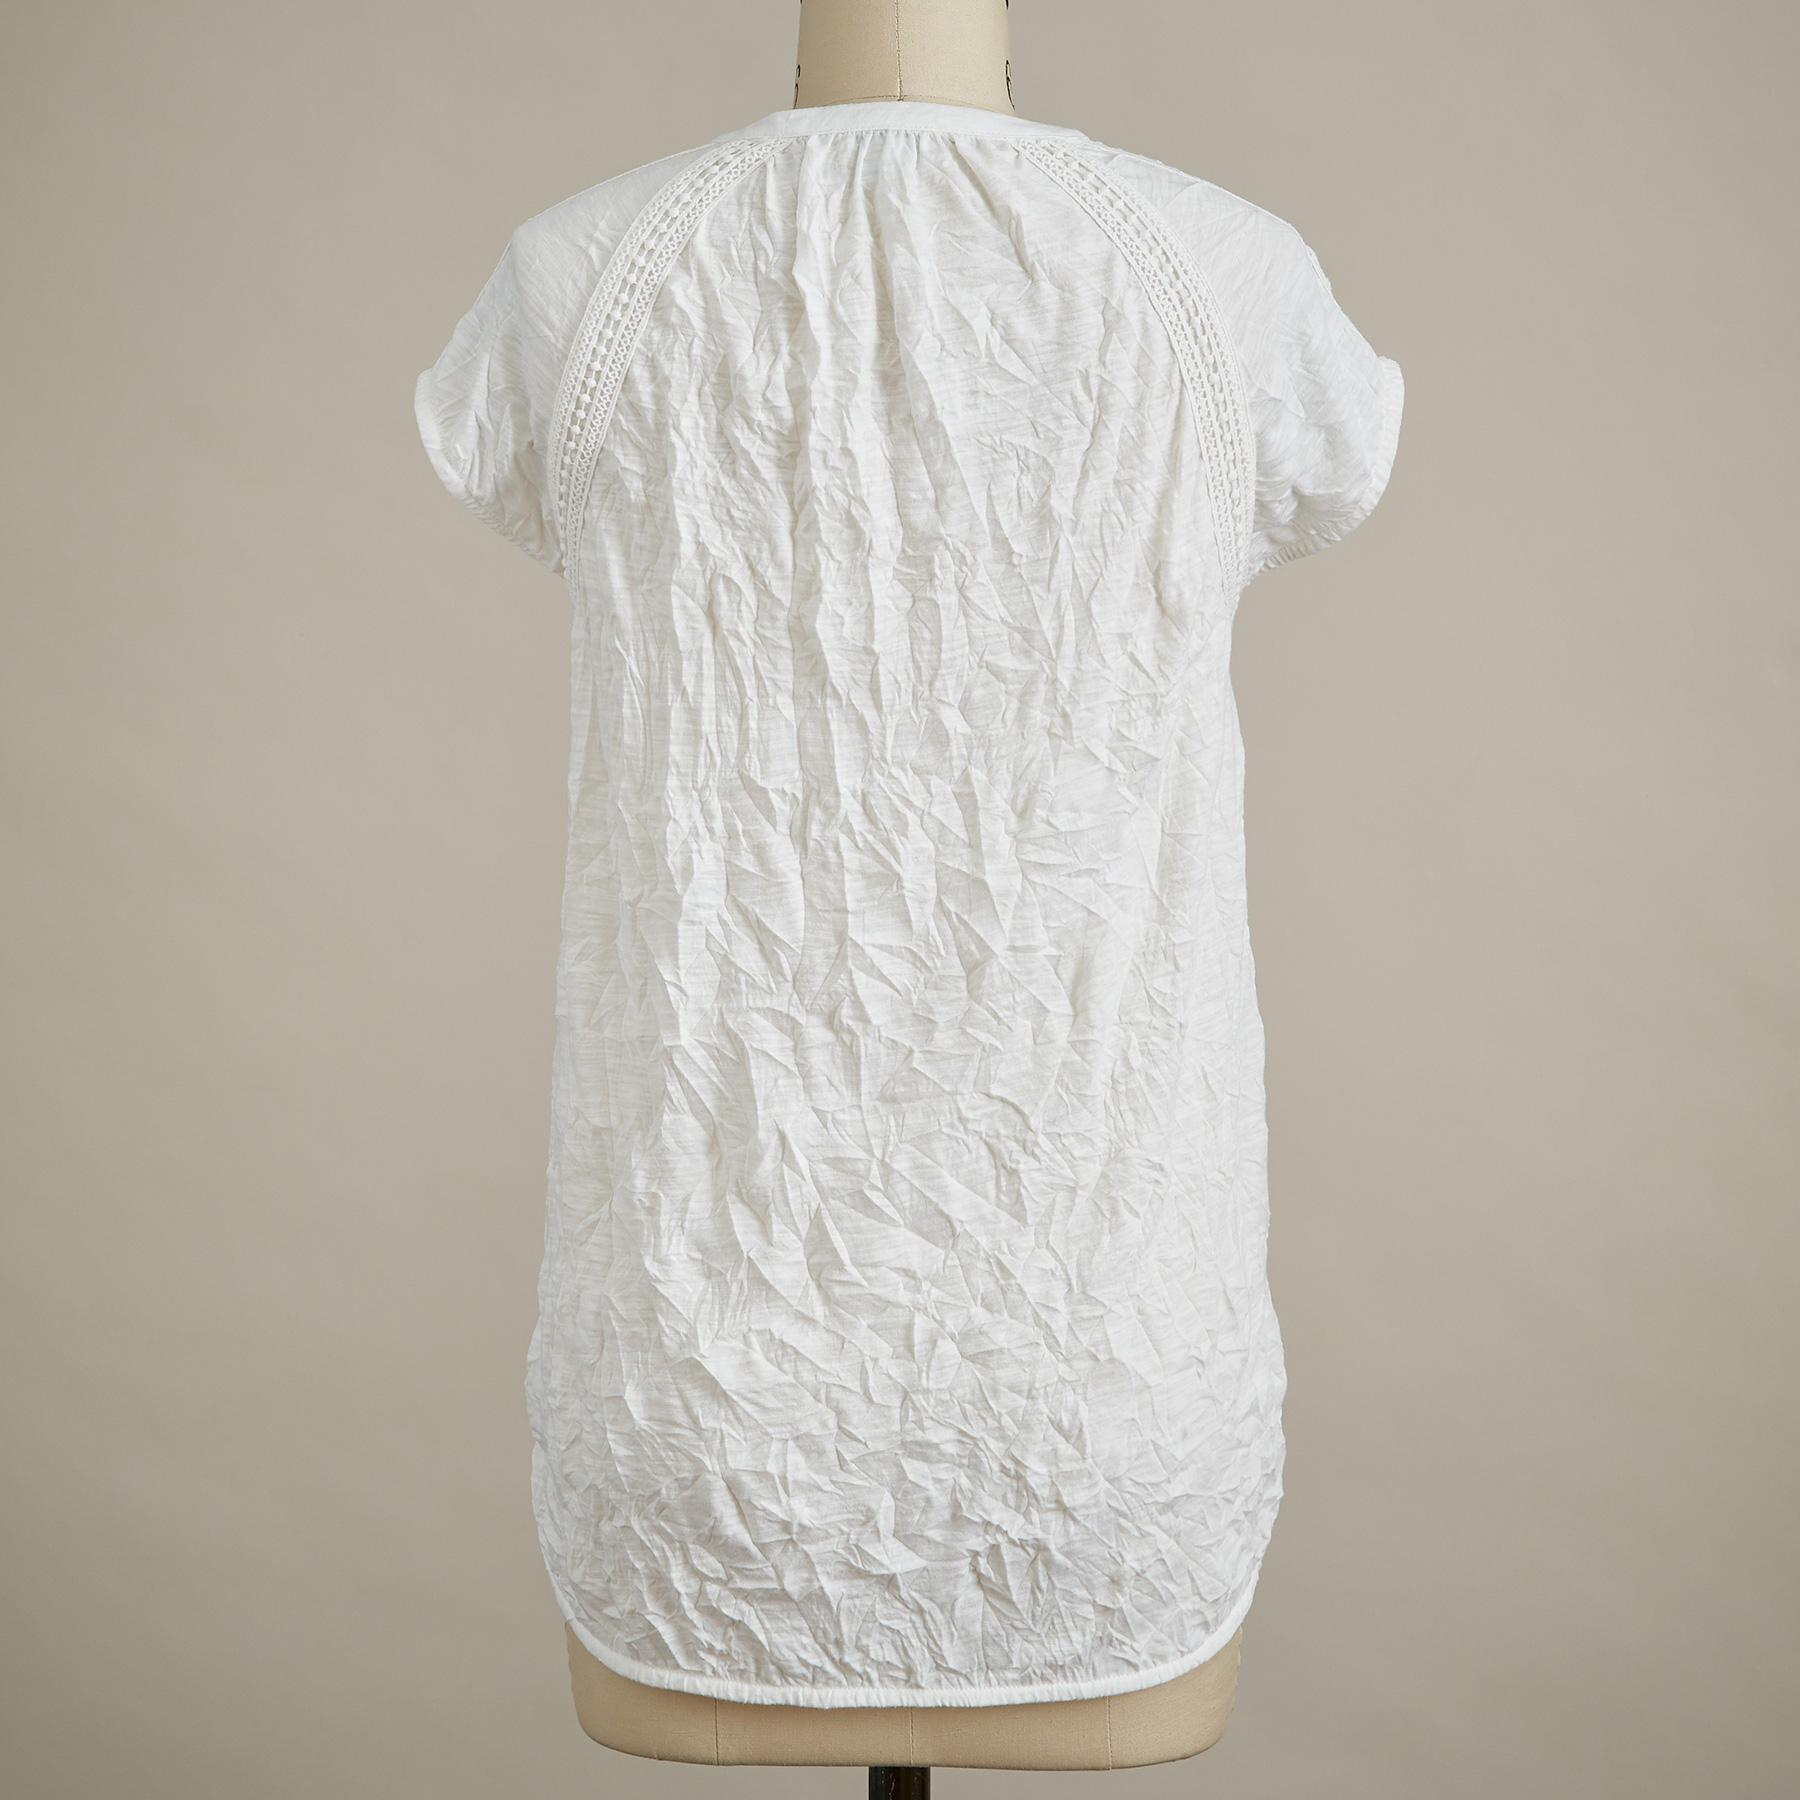 ROMANCE TEXTURED SHORT-SLEEVE TEE: View 3